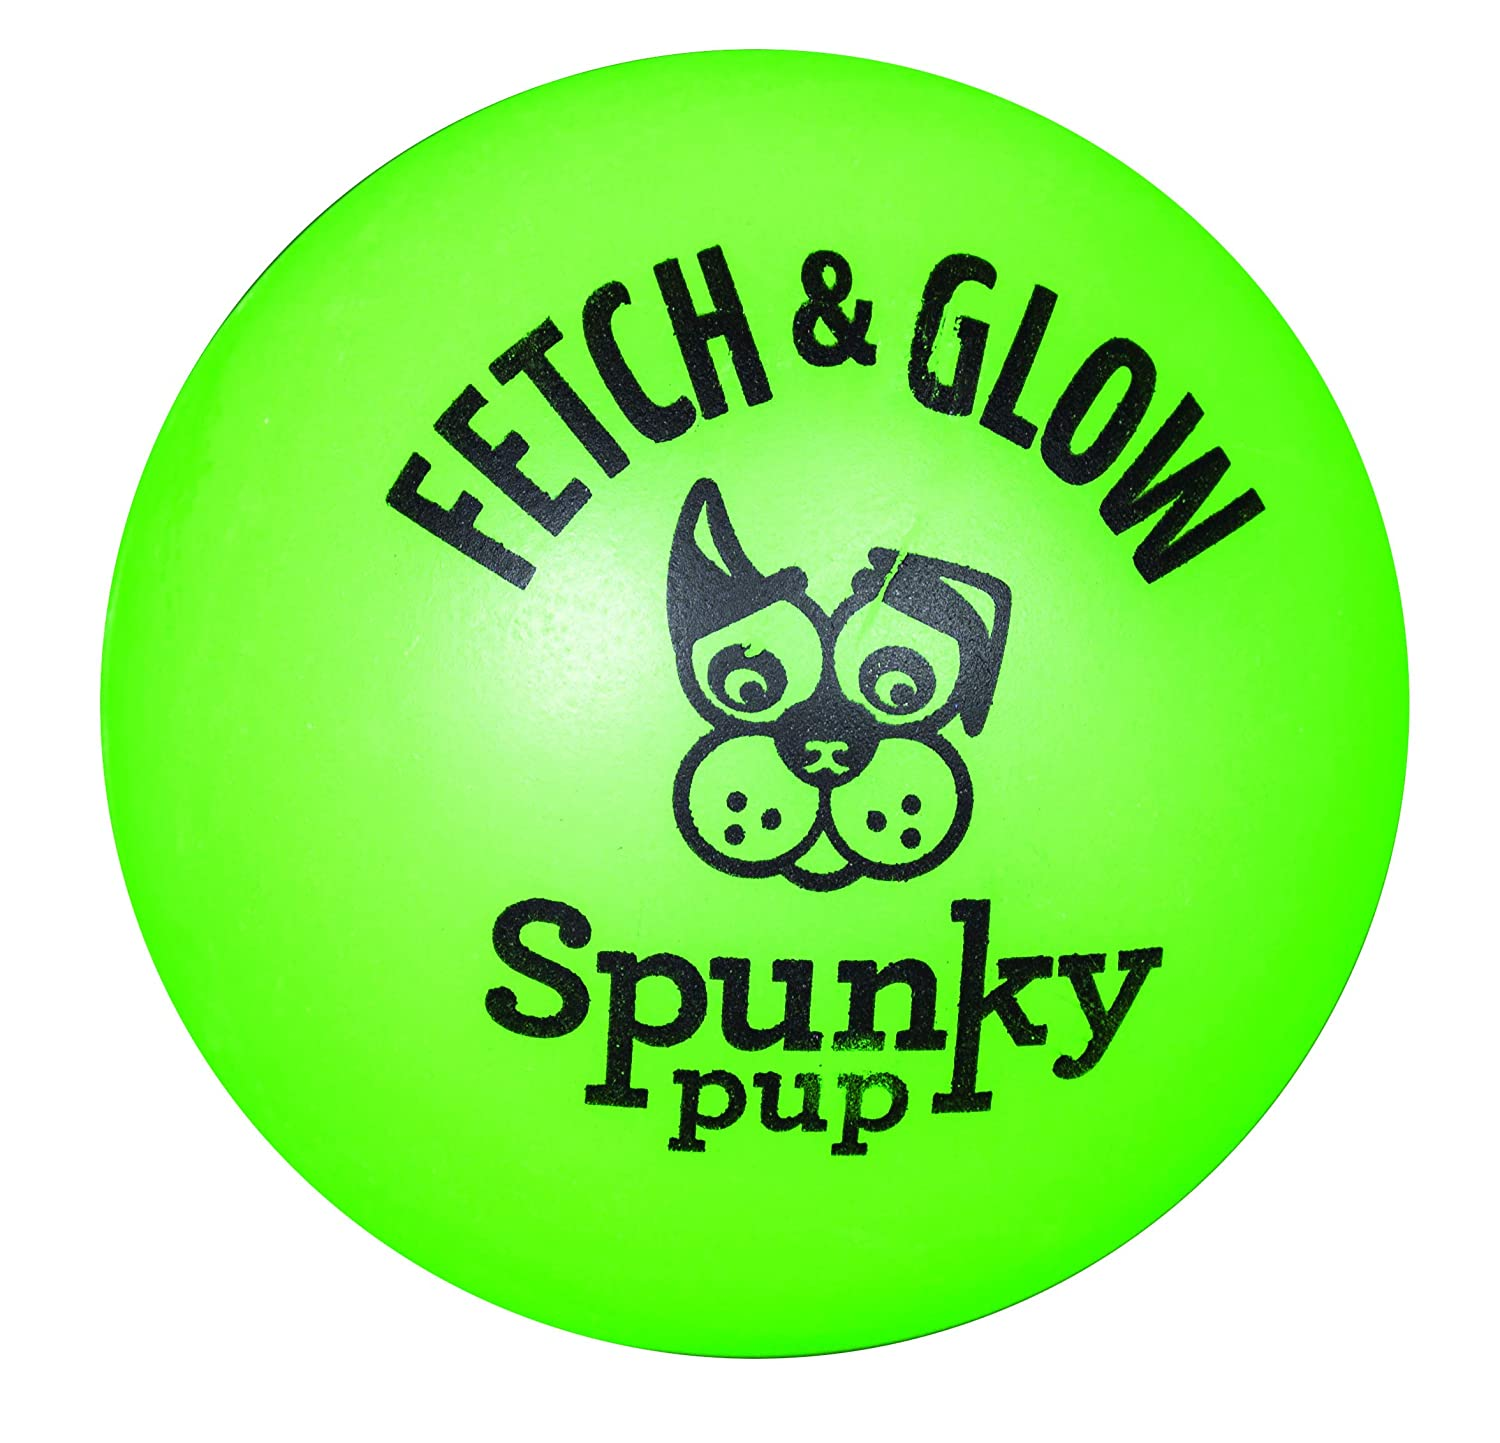 Spunky Pup Fetch and Glow Ball, Small, 2-Pack (Assorted Colors) American Dog Toys 1957